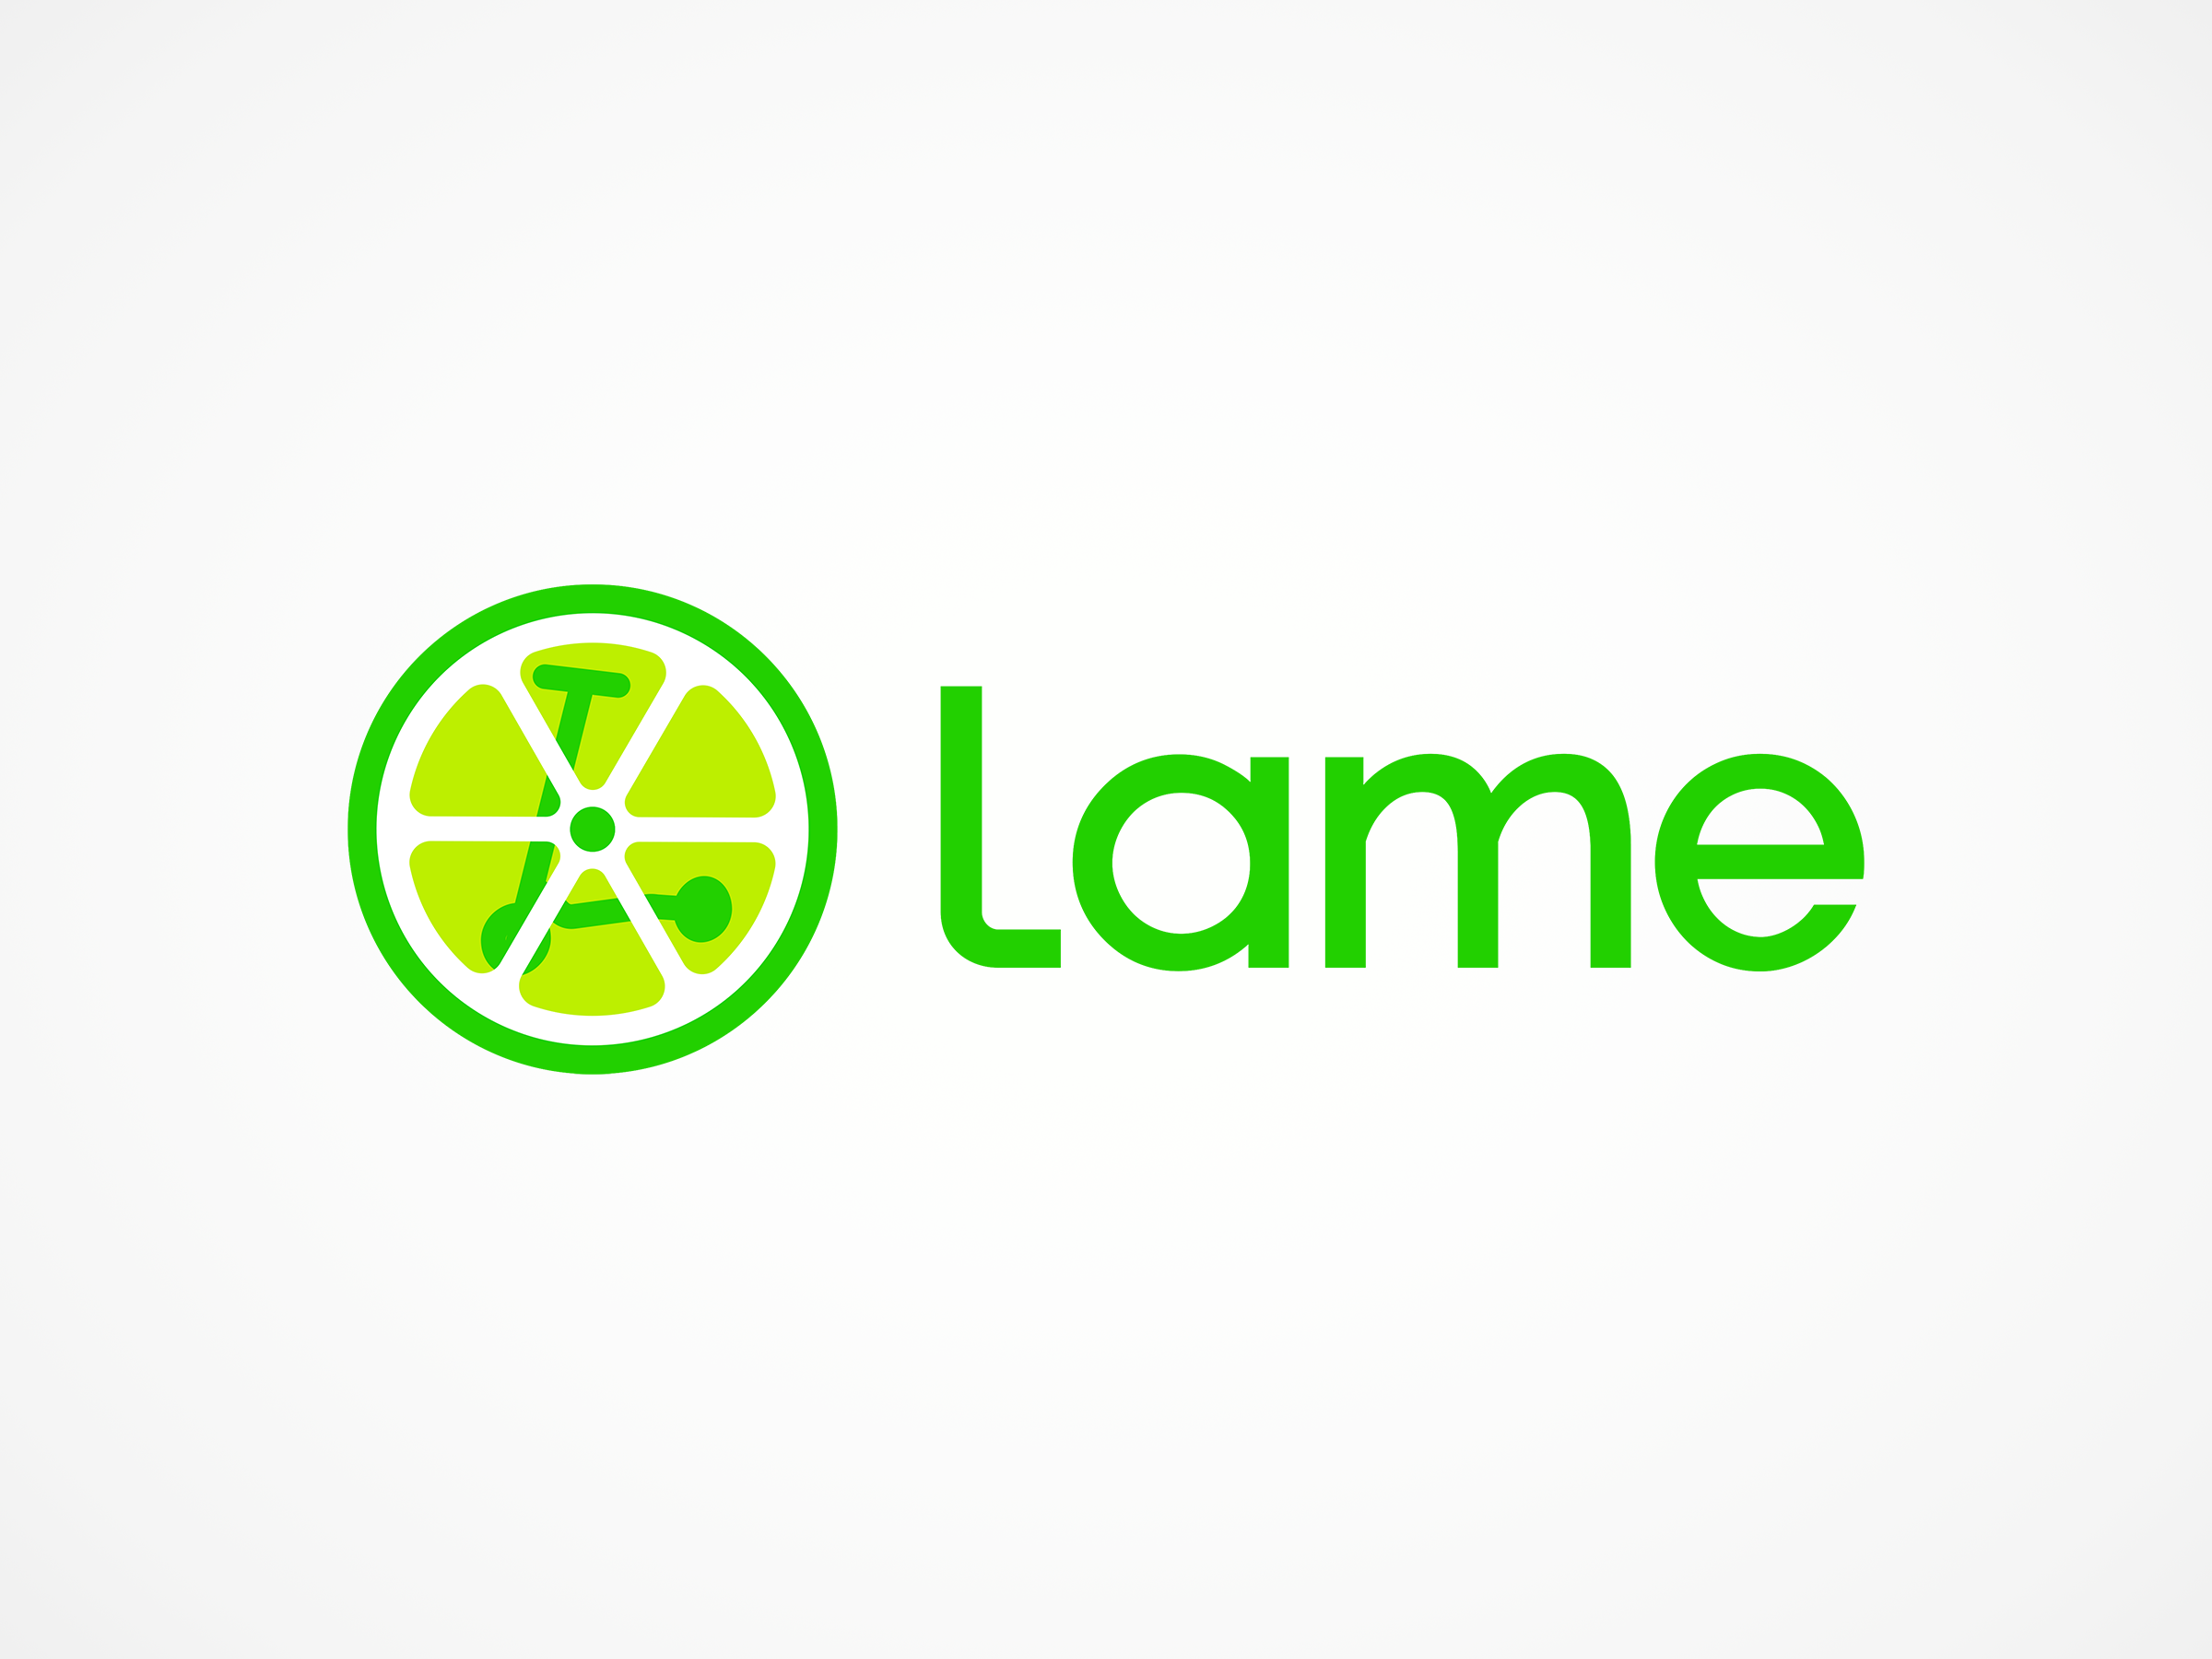 Lime lame 2